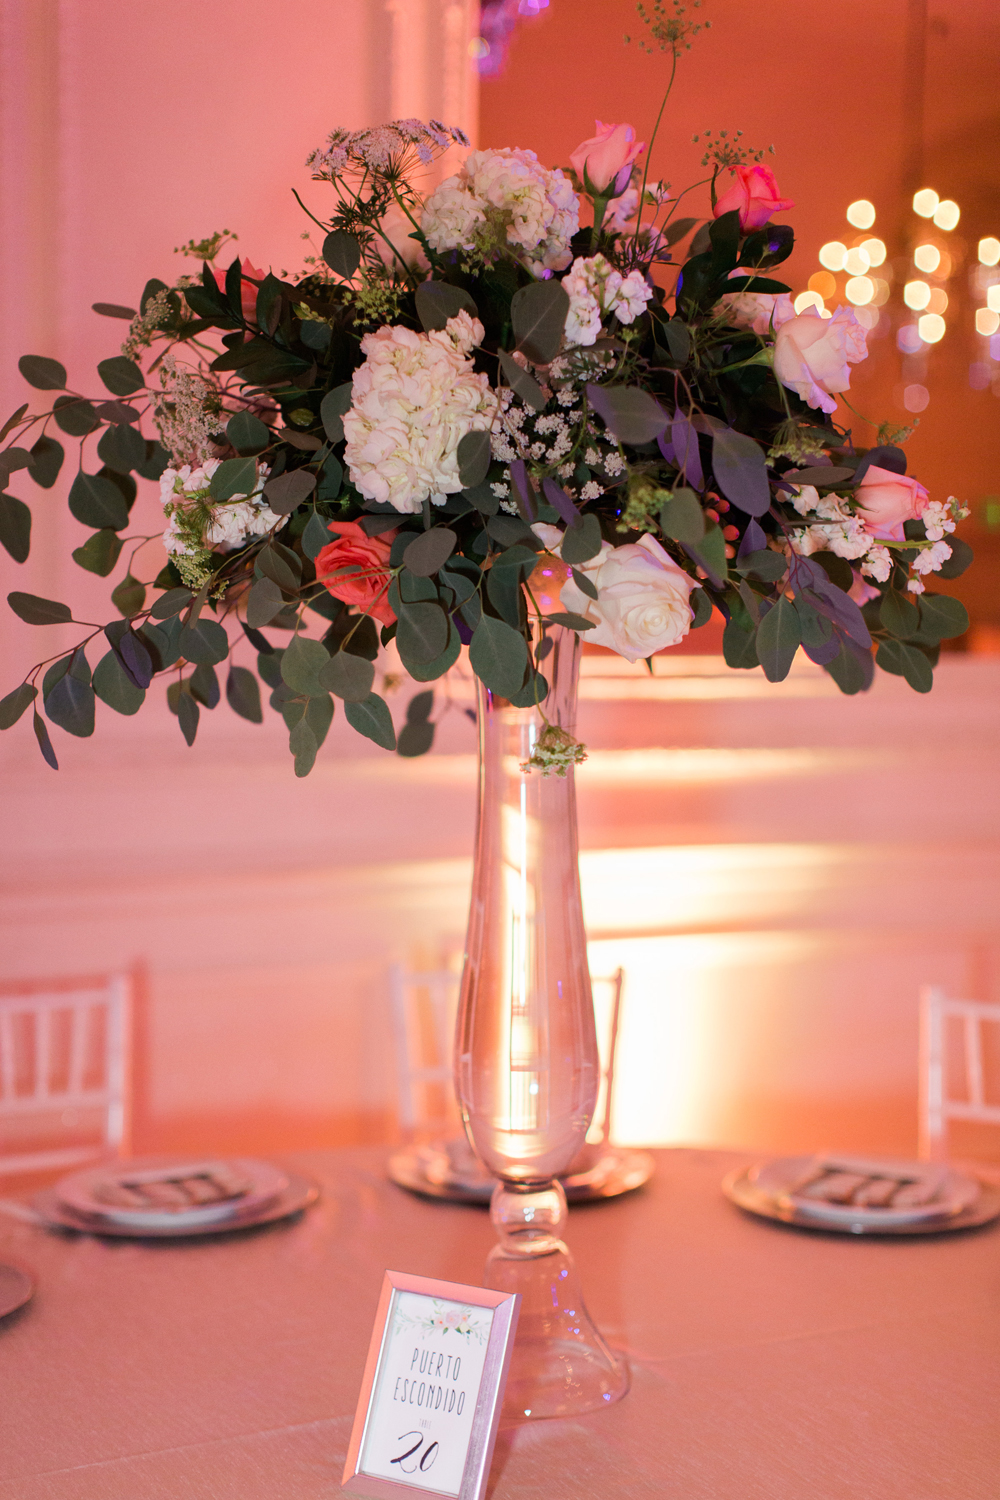 969af-pretty-in-pink-vintage-hollywood-fiesta-wedding-alexandria-ballroom-palm-court-room-centerpieces.jpg